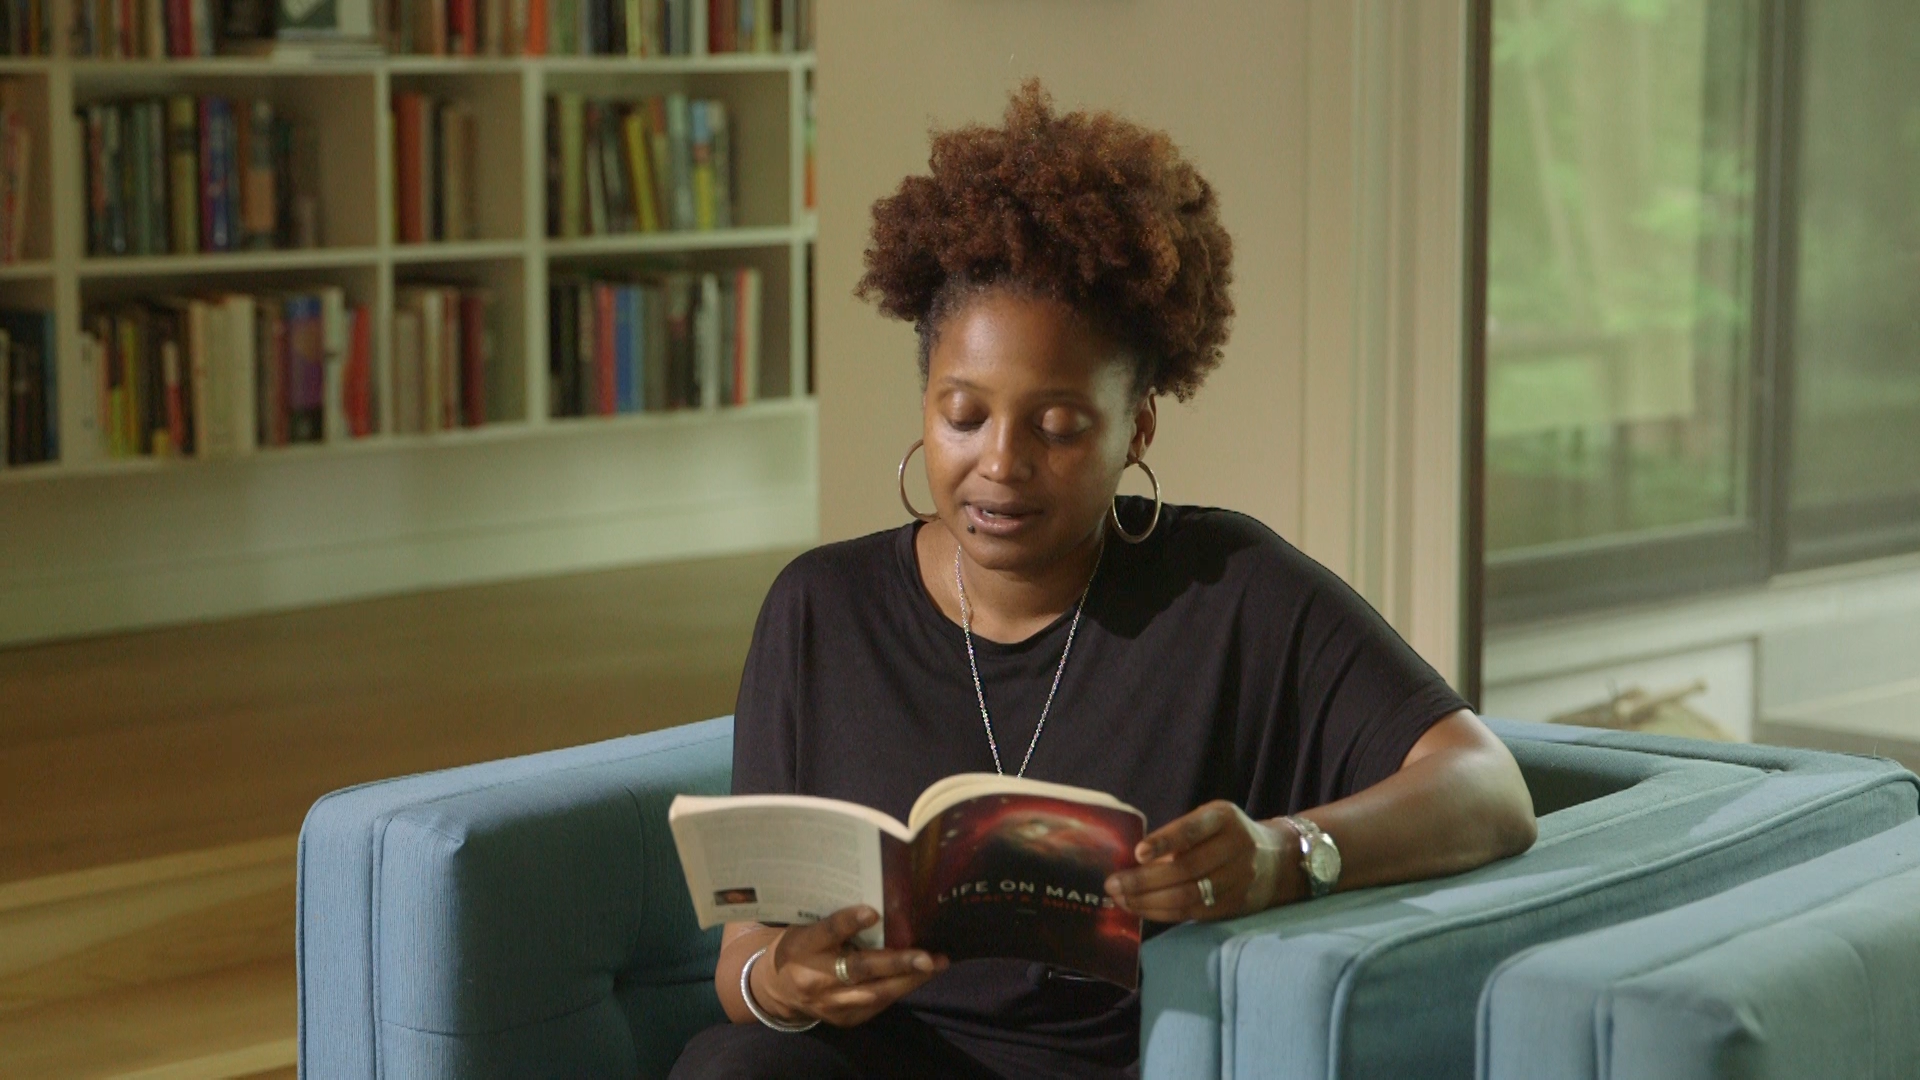 Tracy+K+Smith+reading+3.png